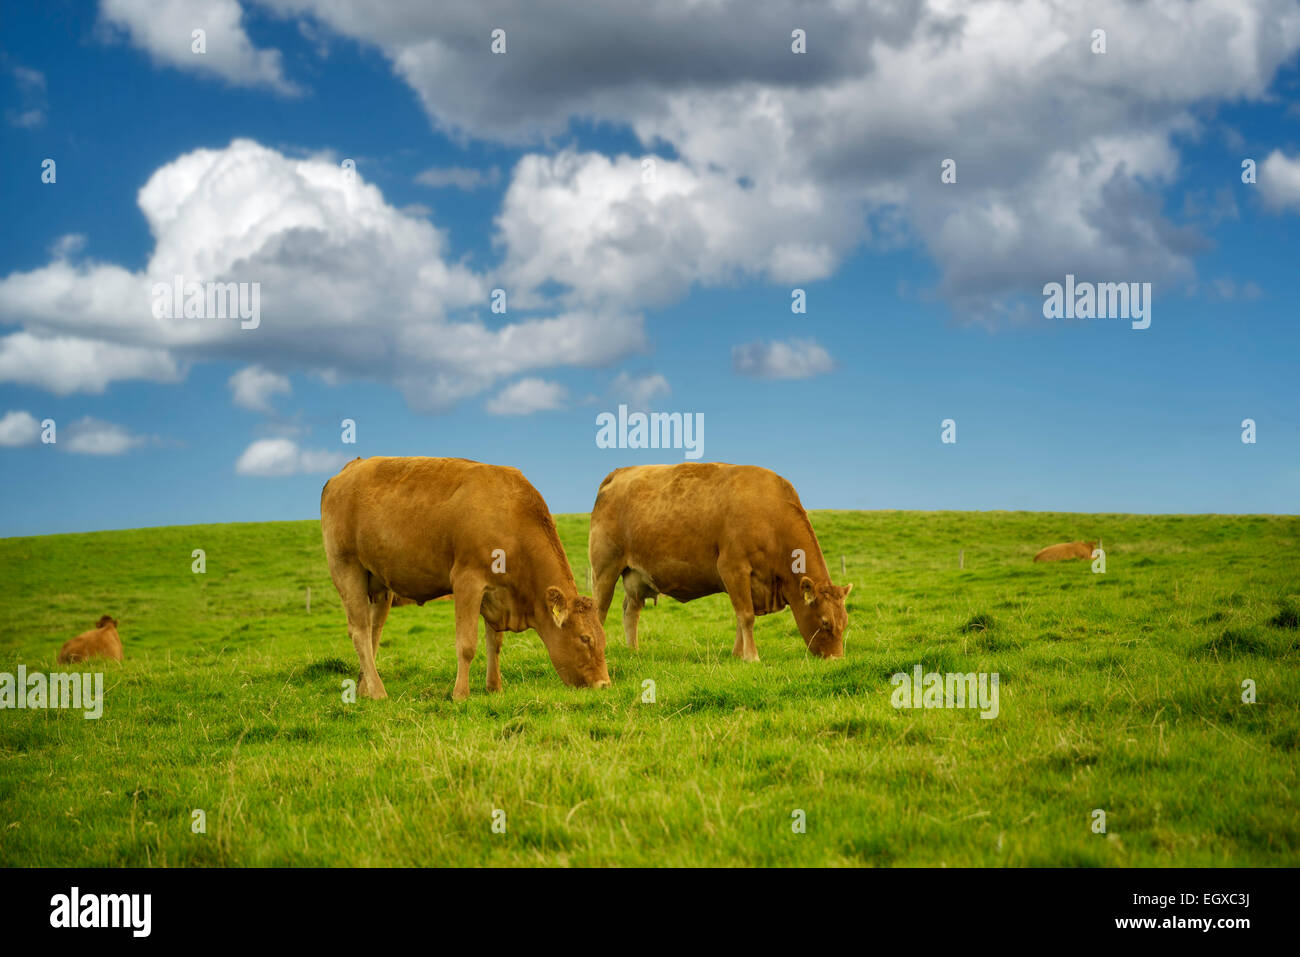 Cows grazing in pasture. Ireland. Stock Photo